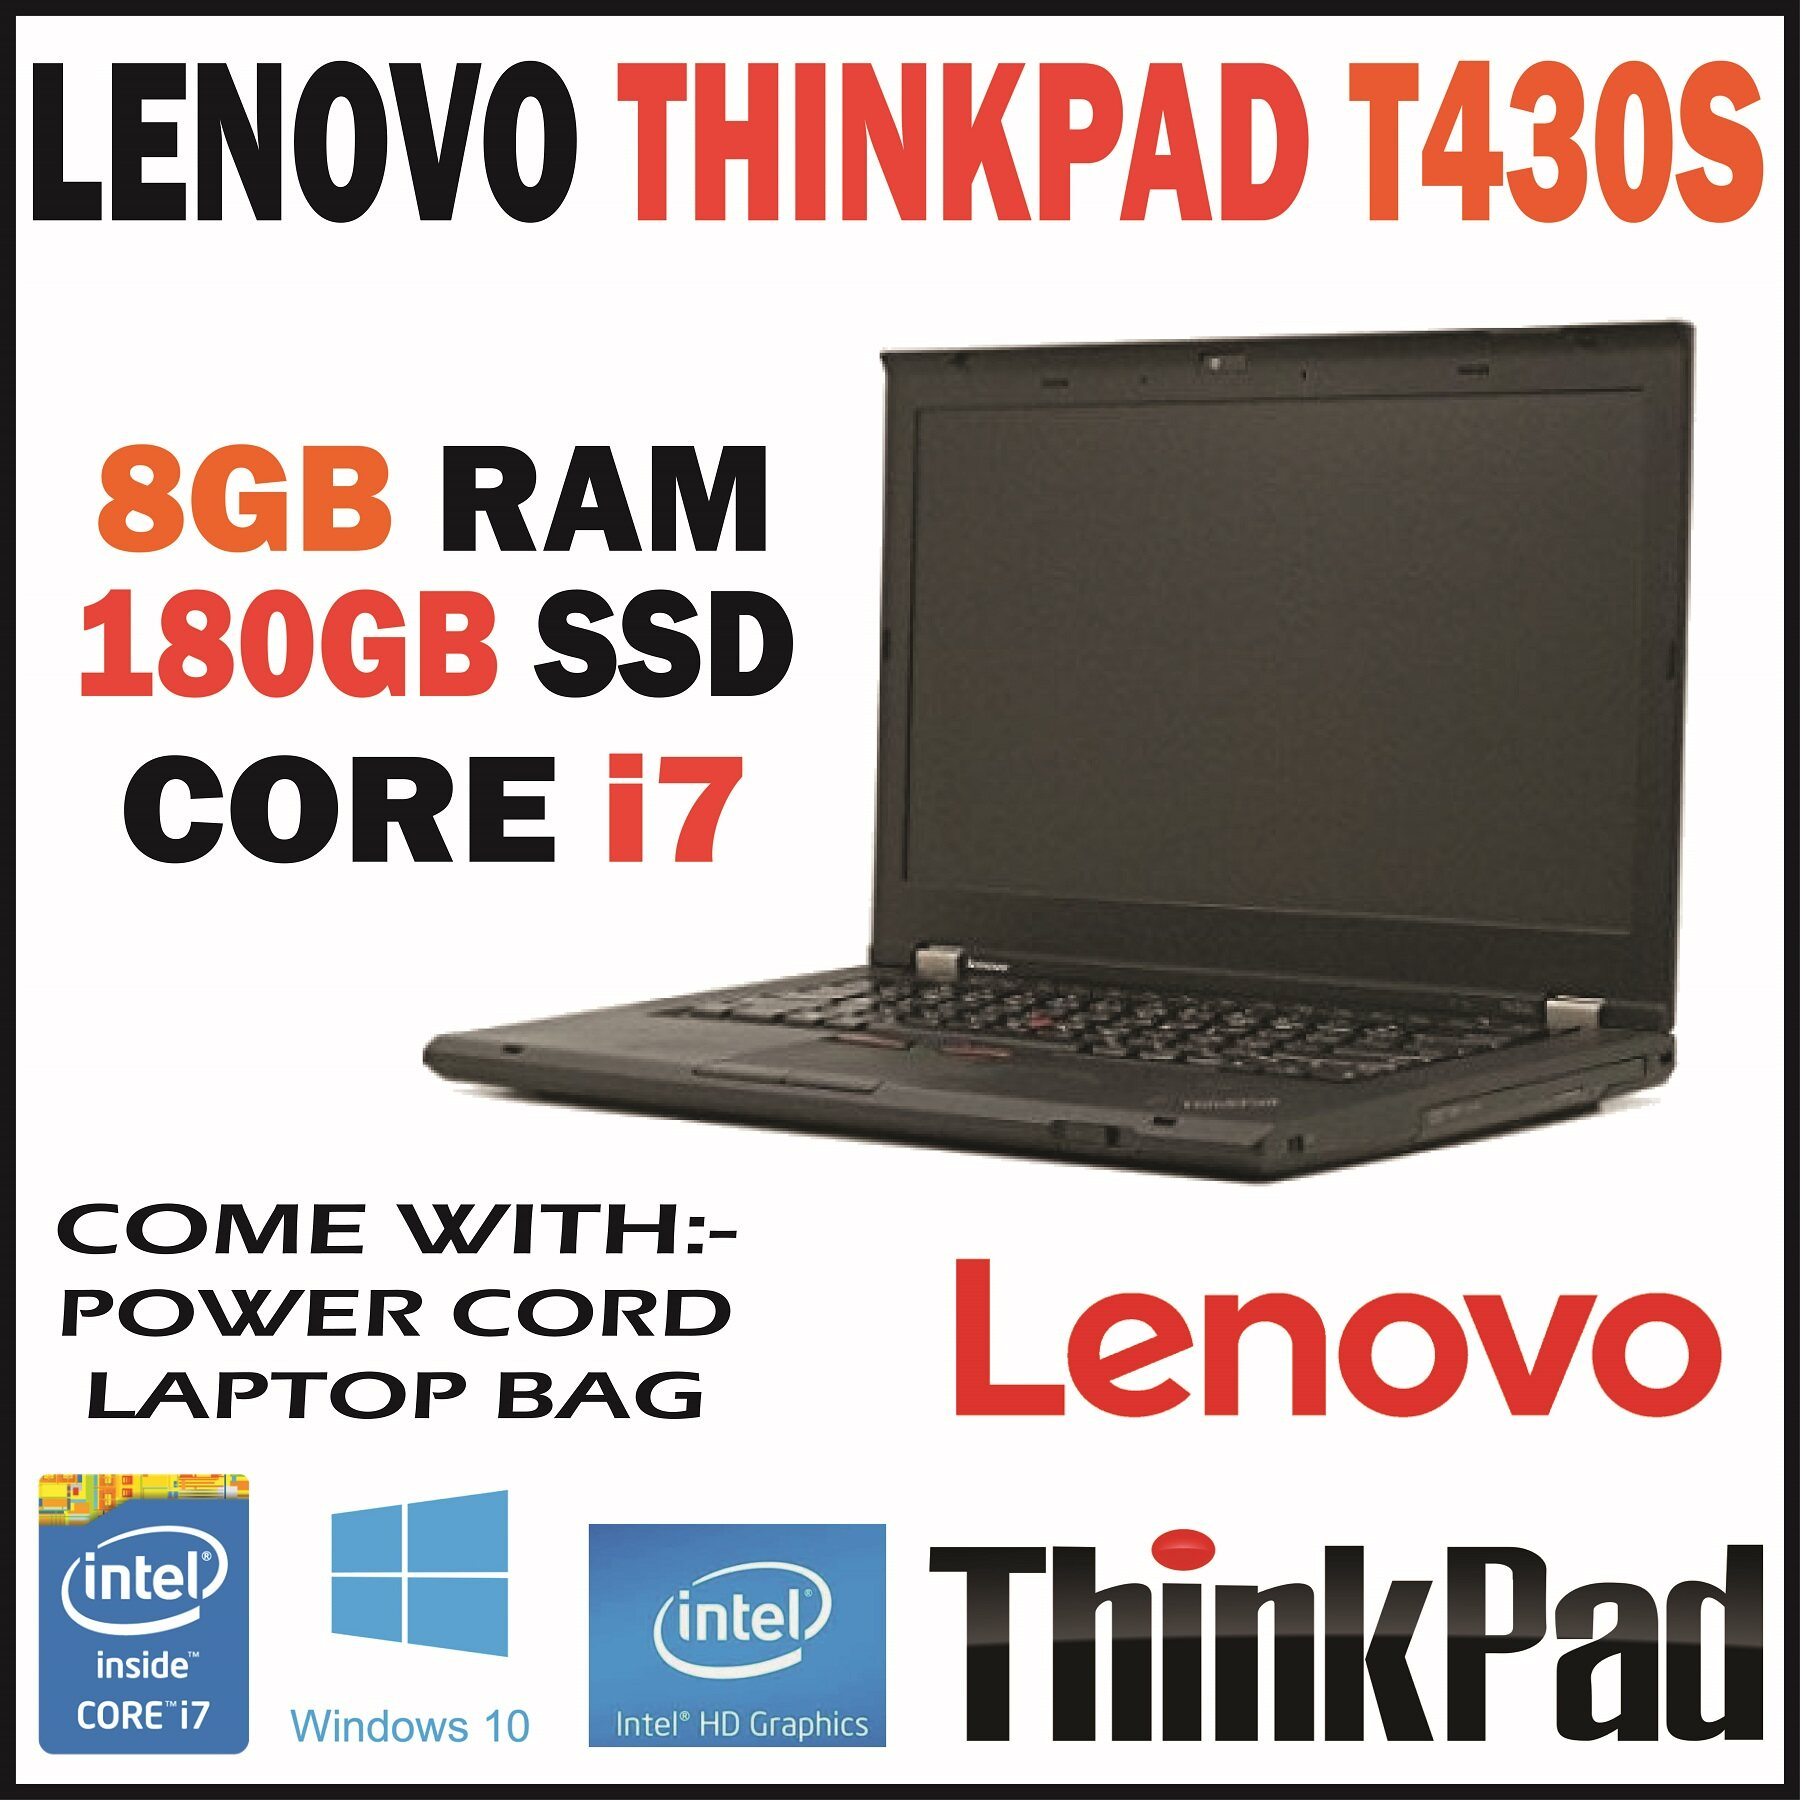 (REFURBISHED) LENOVO THINKPAD T430S / INTEL CORE I7 3RD GEN 3520M / 2.90 GHZ / 8GB RAM / 180GB SSD / WIN 10 / DVD WRITER / DUAL CORE / THREE MONTHS WARRANTY Malaysia